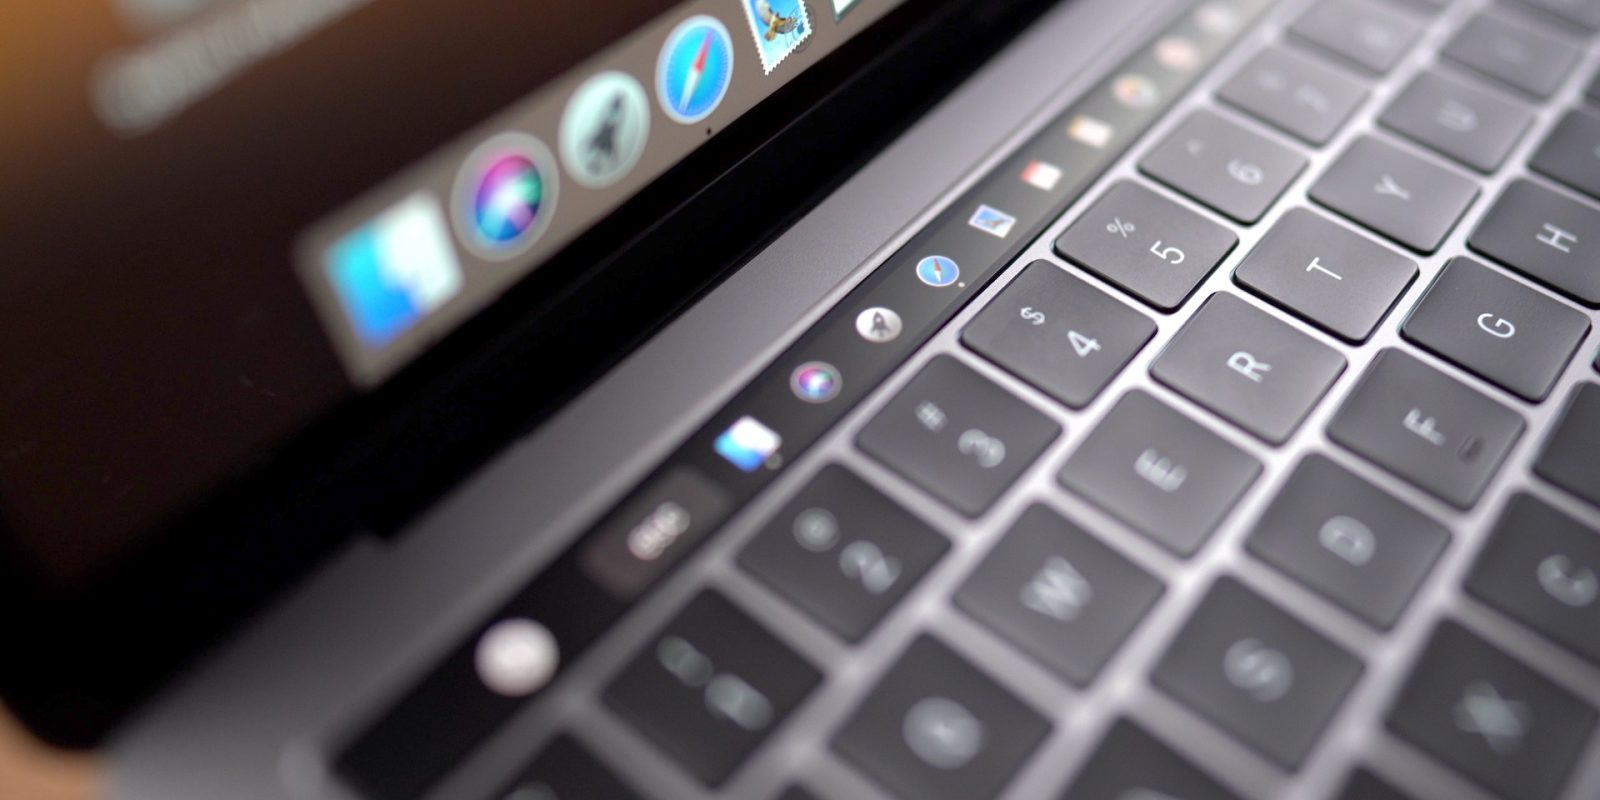 Poll: How do you feel about Apple removing MacBook Pro's Touch Bar?